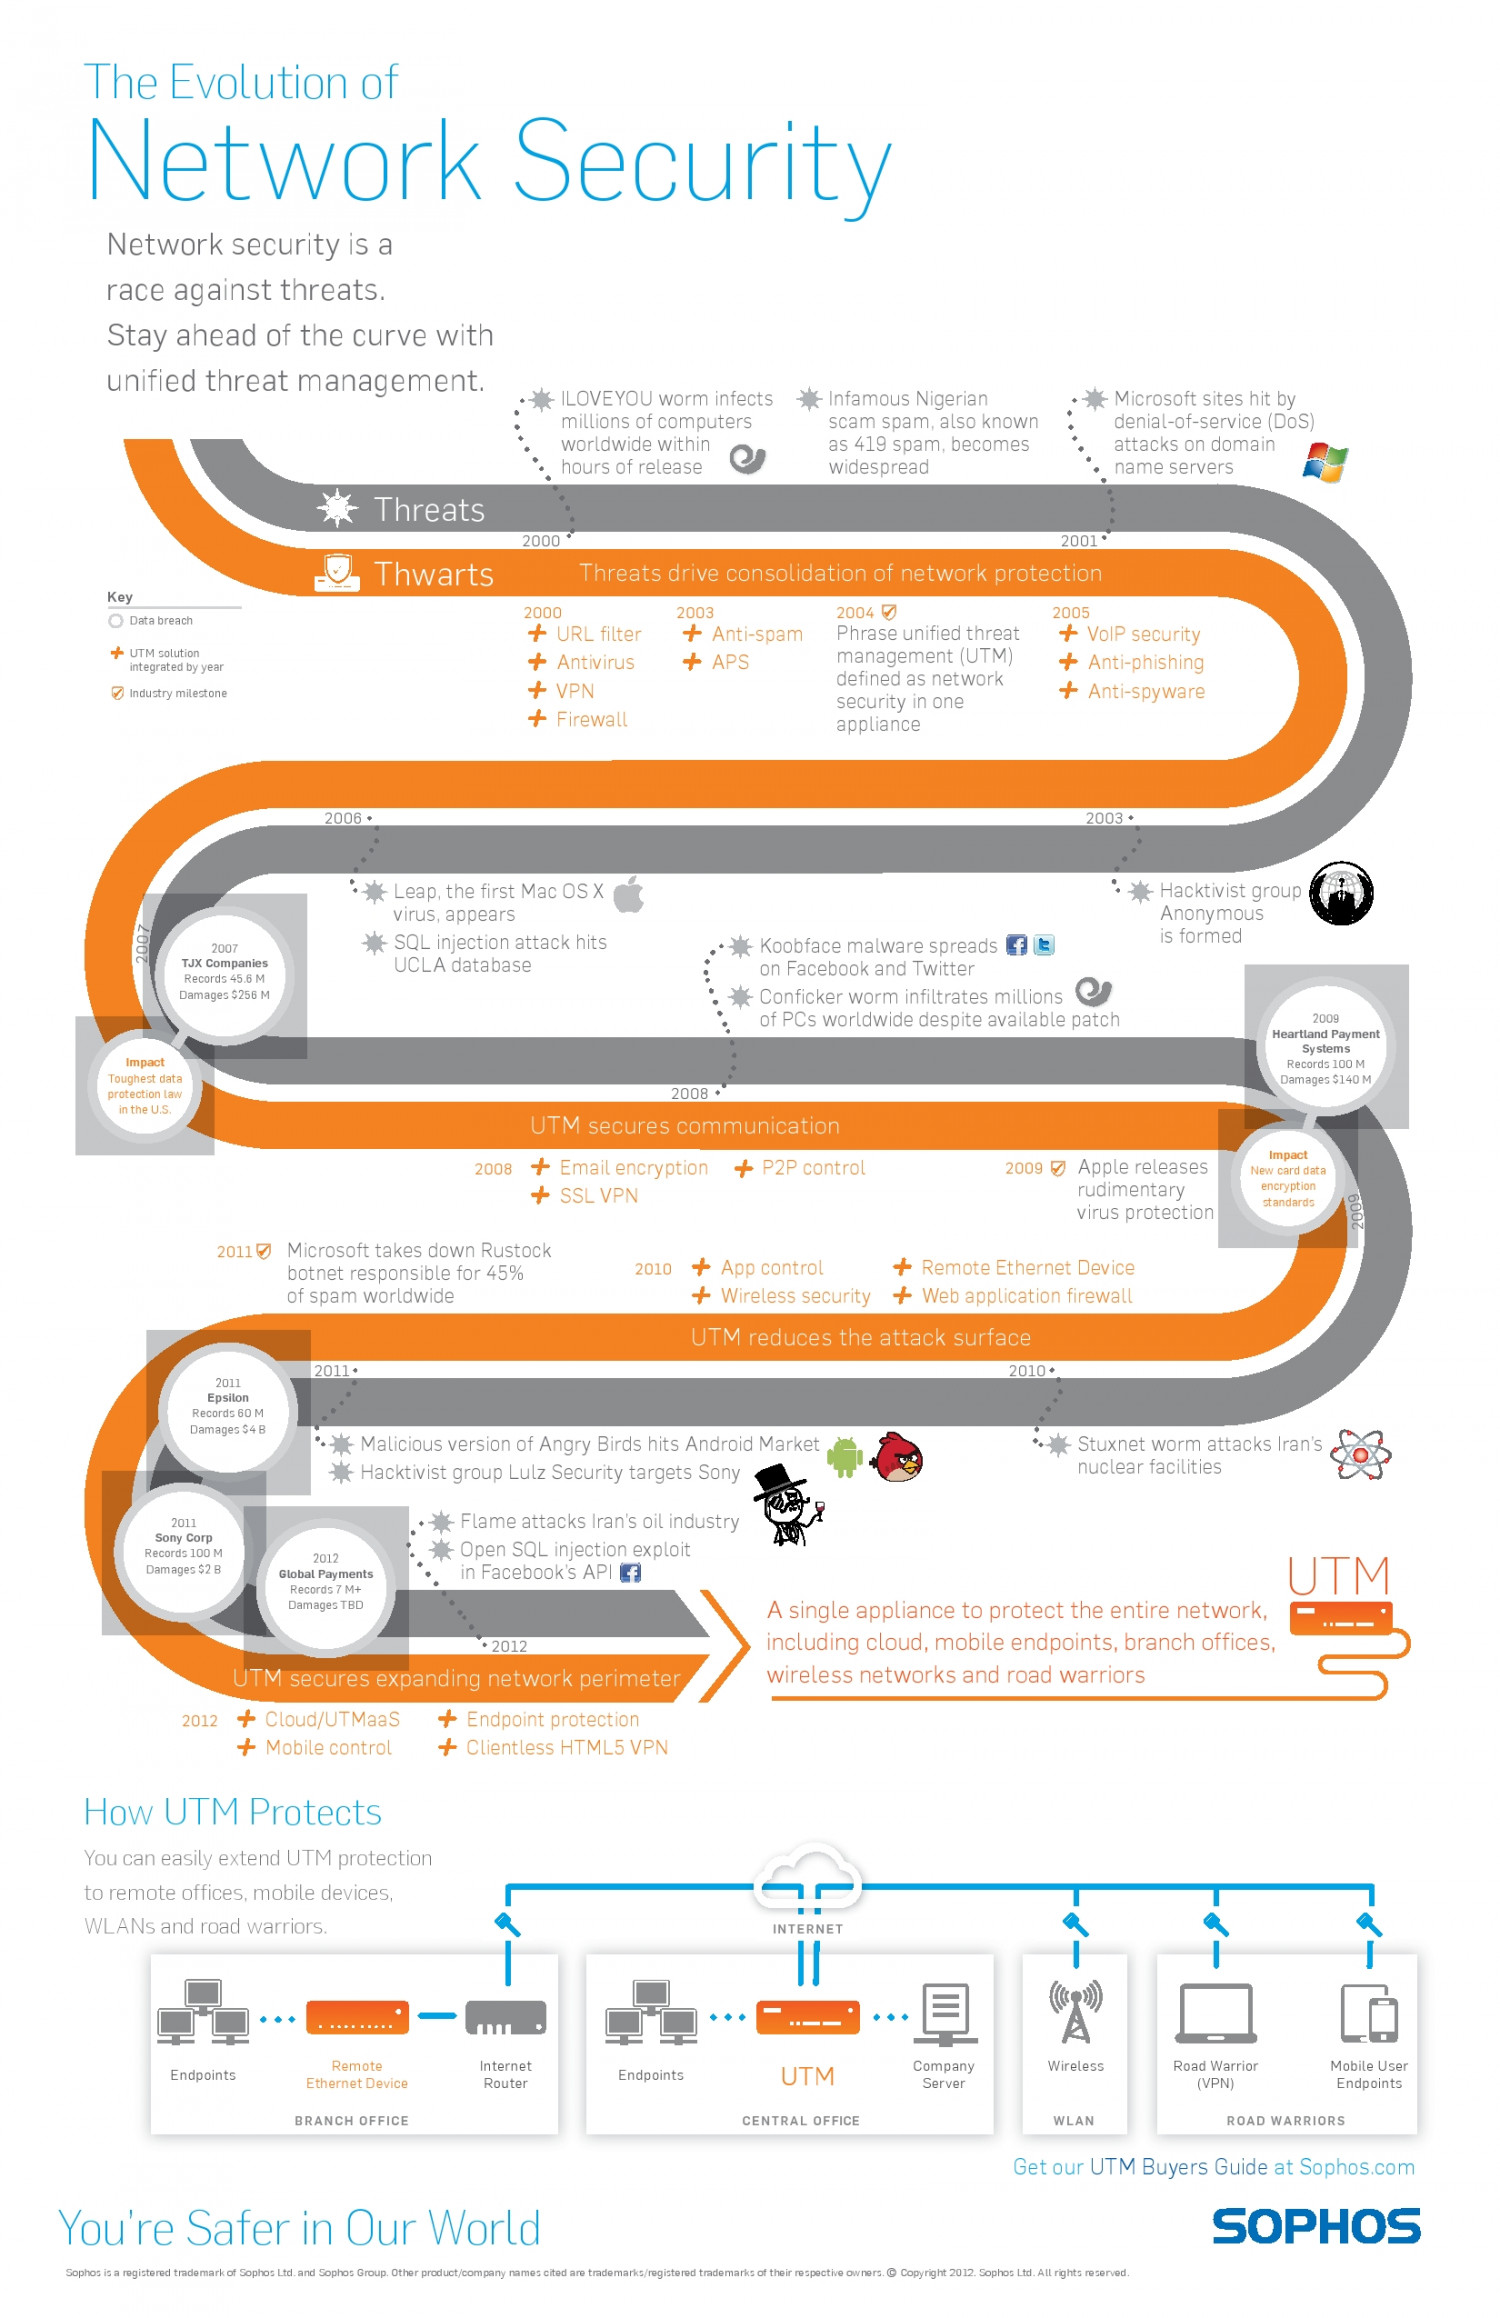 The Evolution of Network Security Infographic